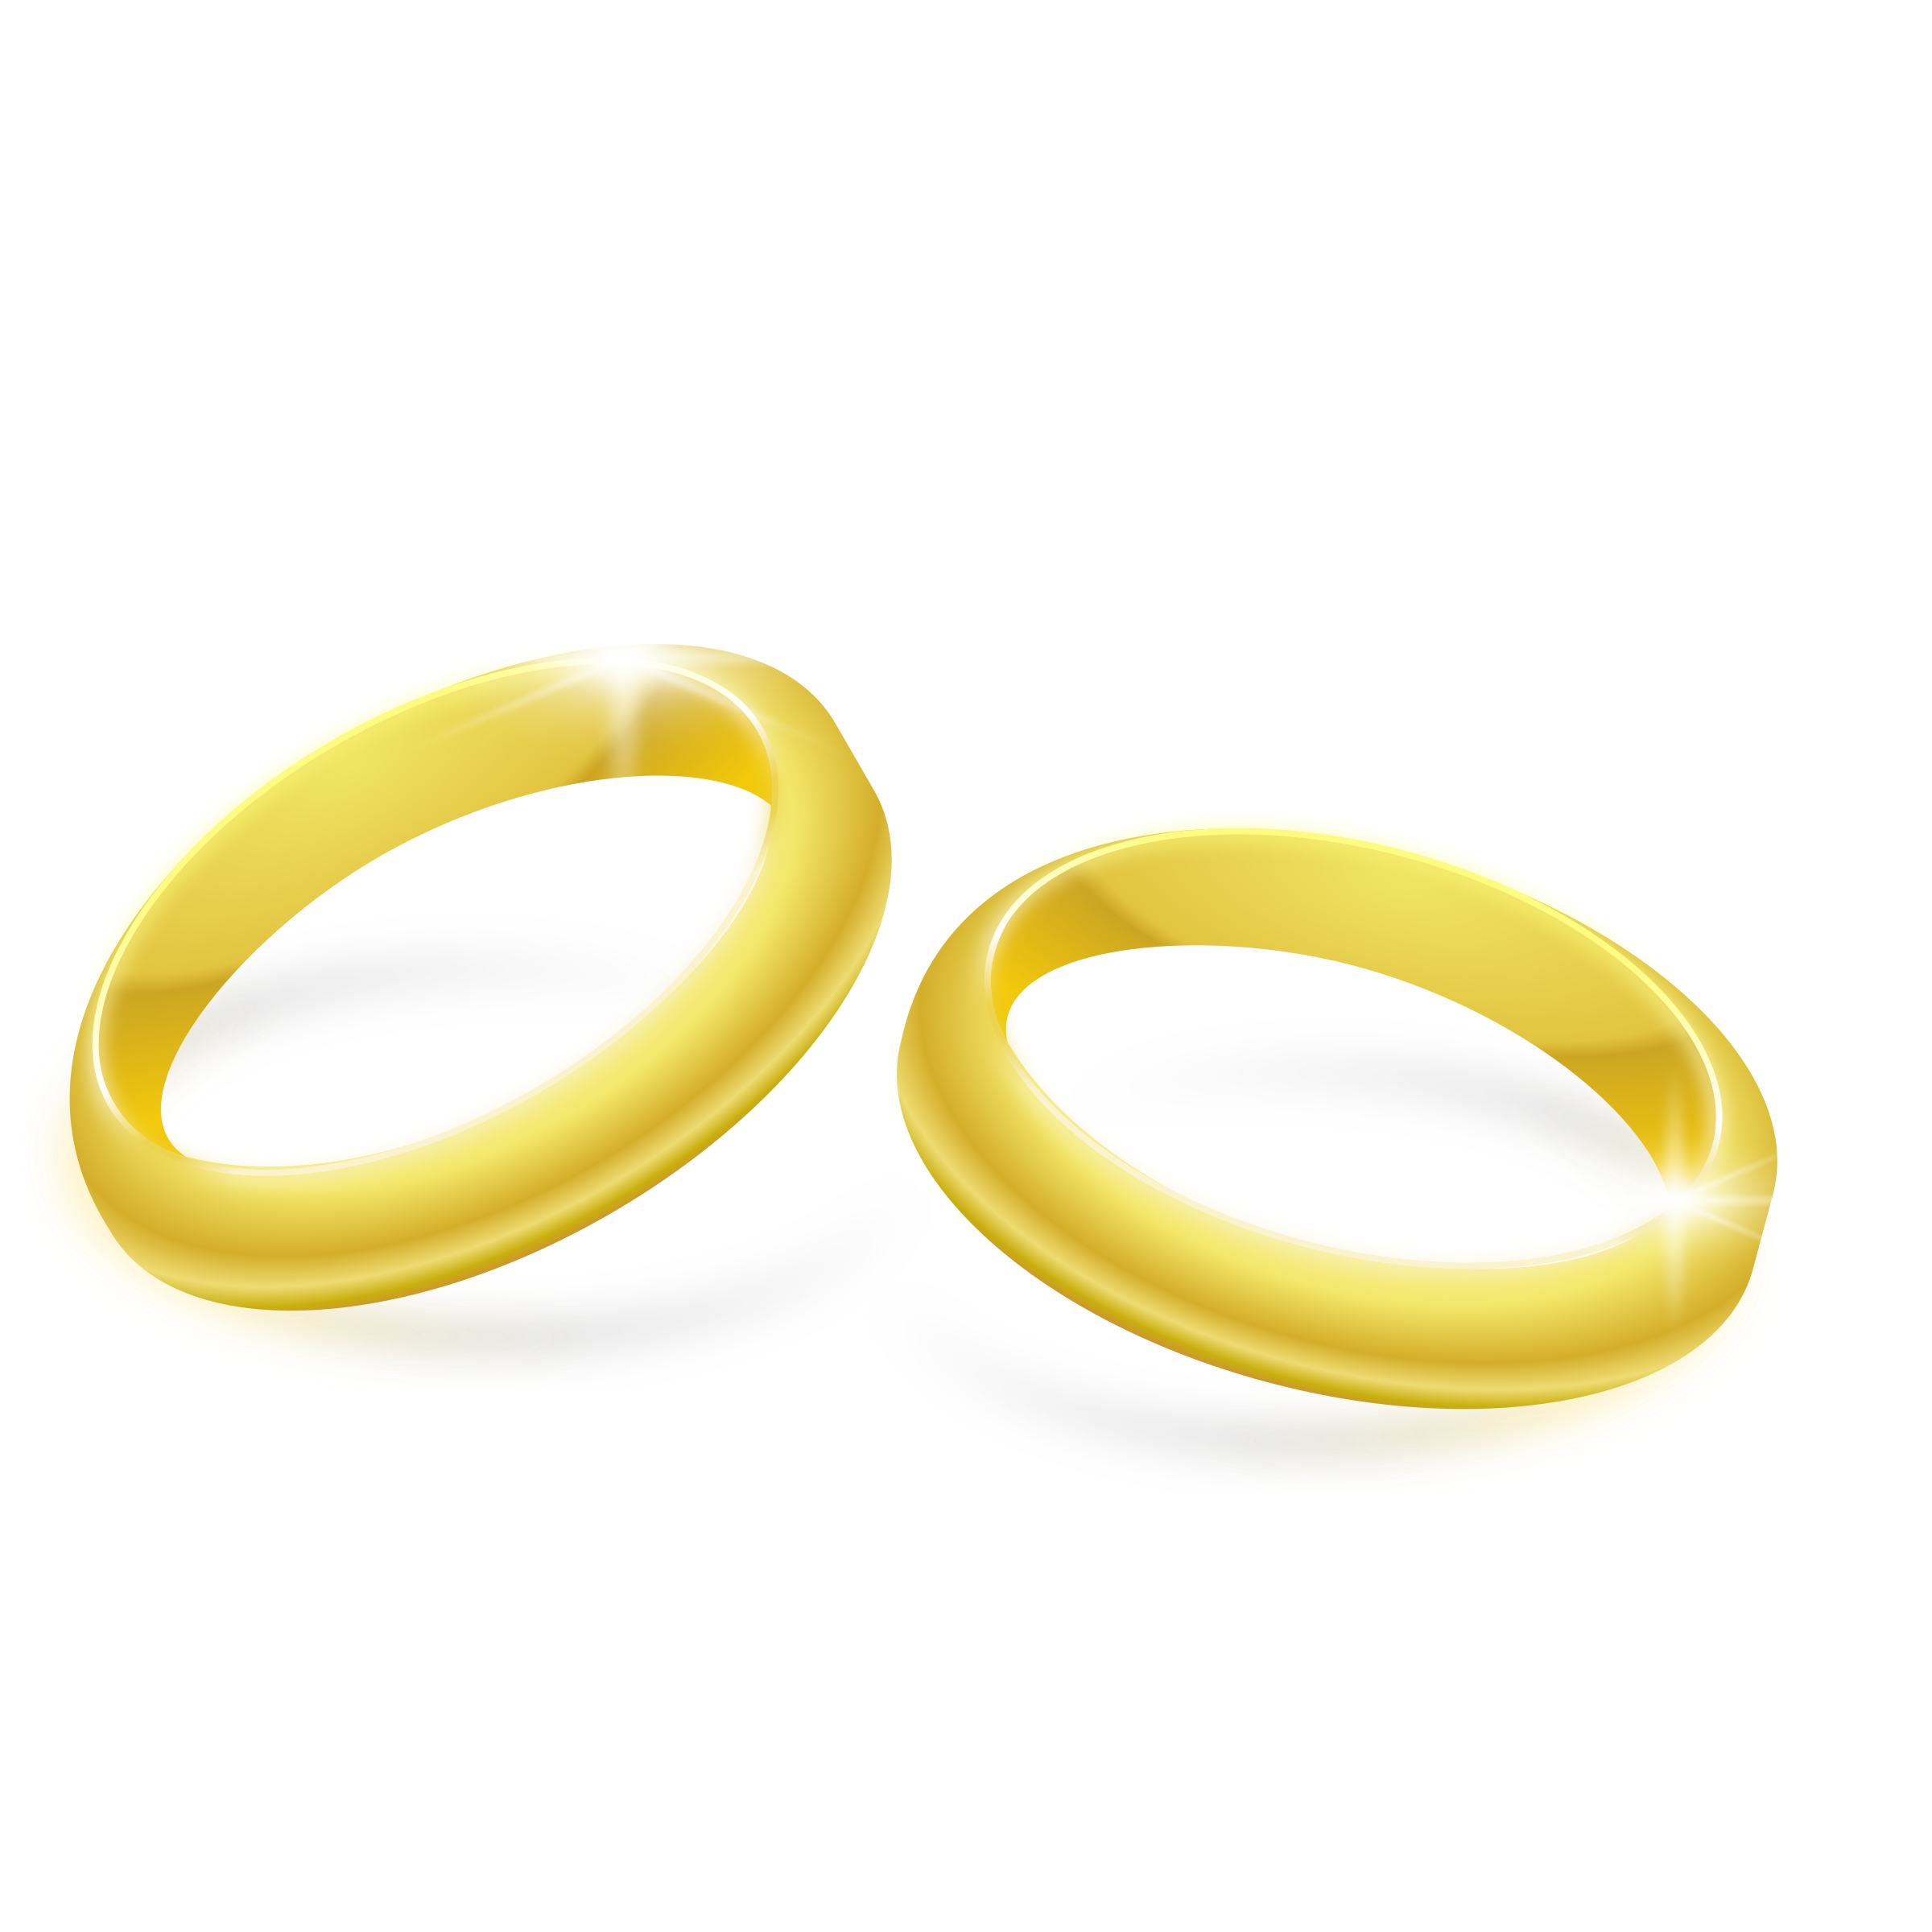 rings explore clipart in color pencil wedding bride and ring interlinked